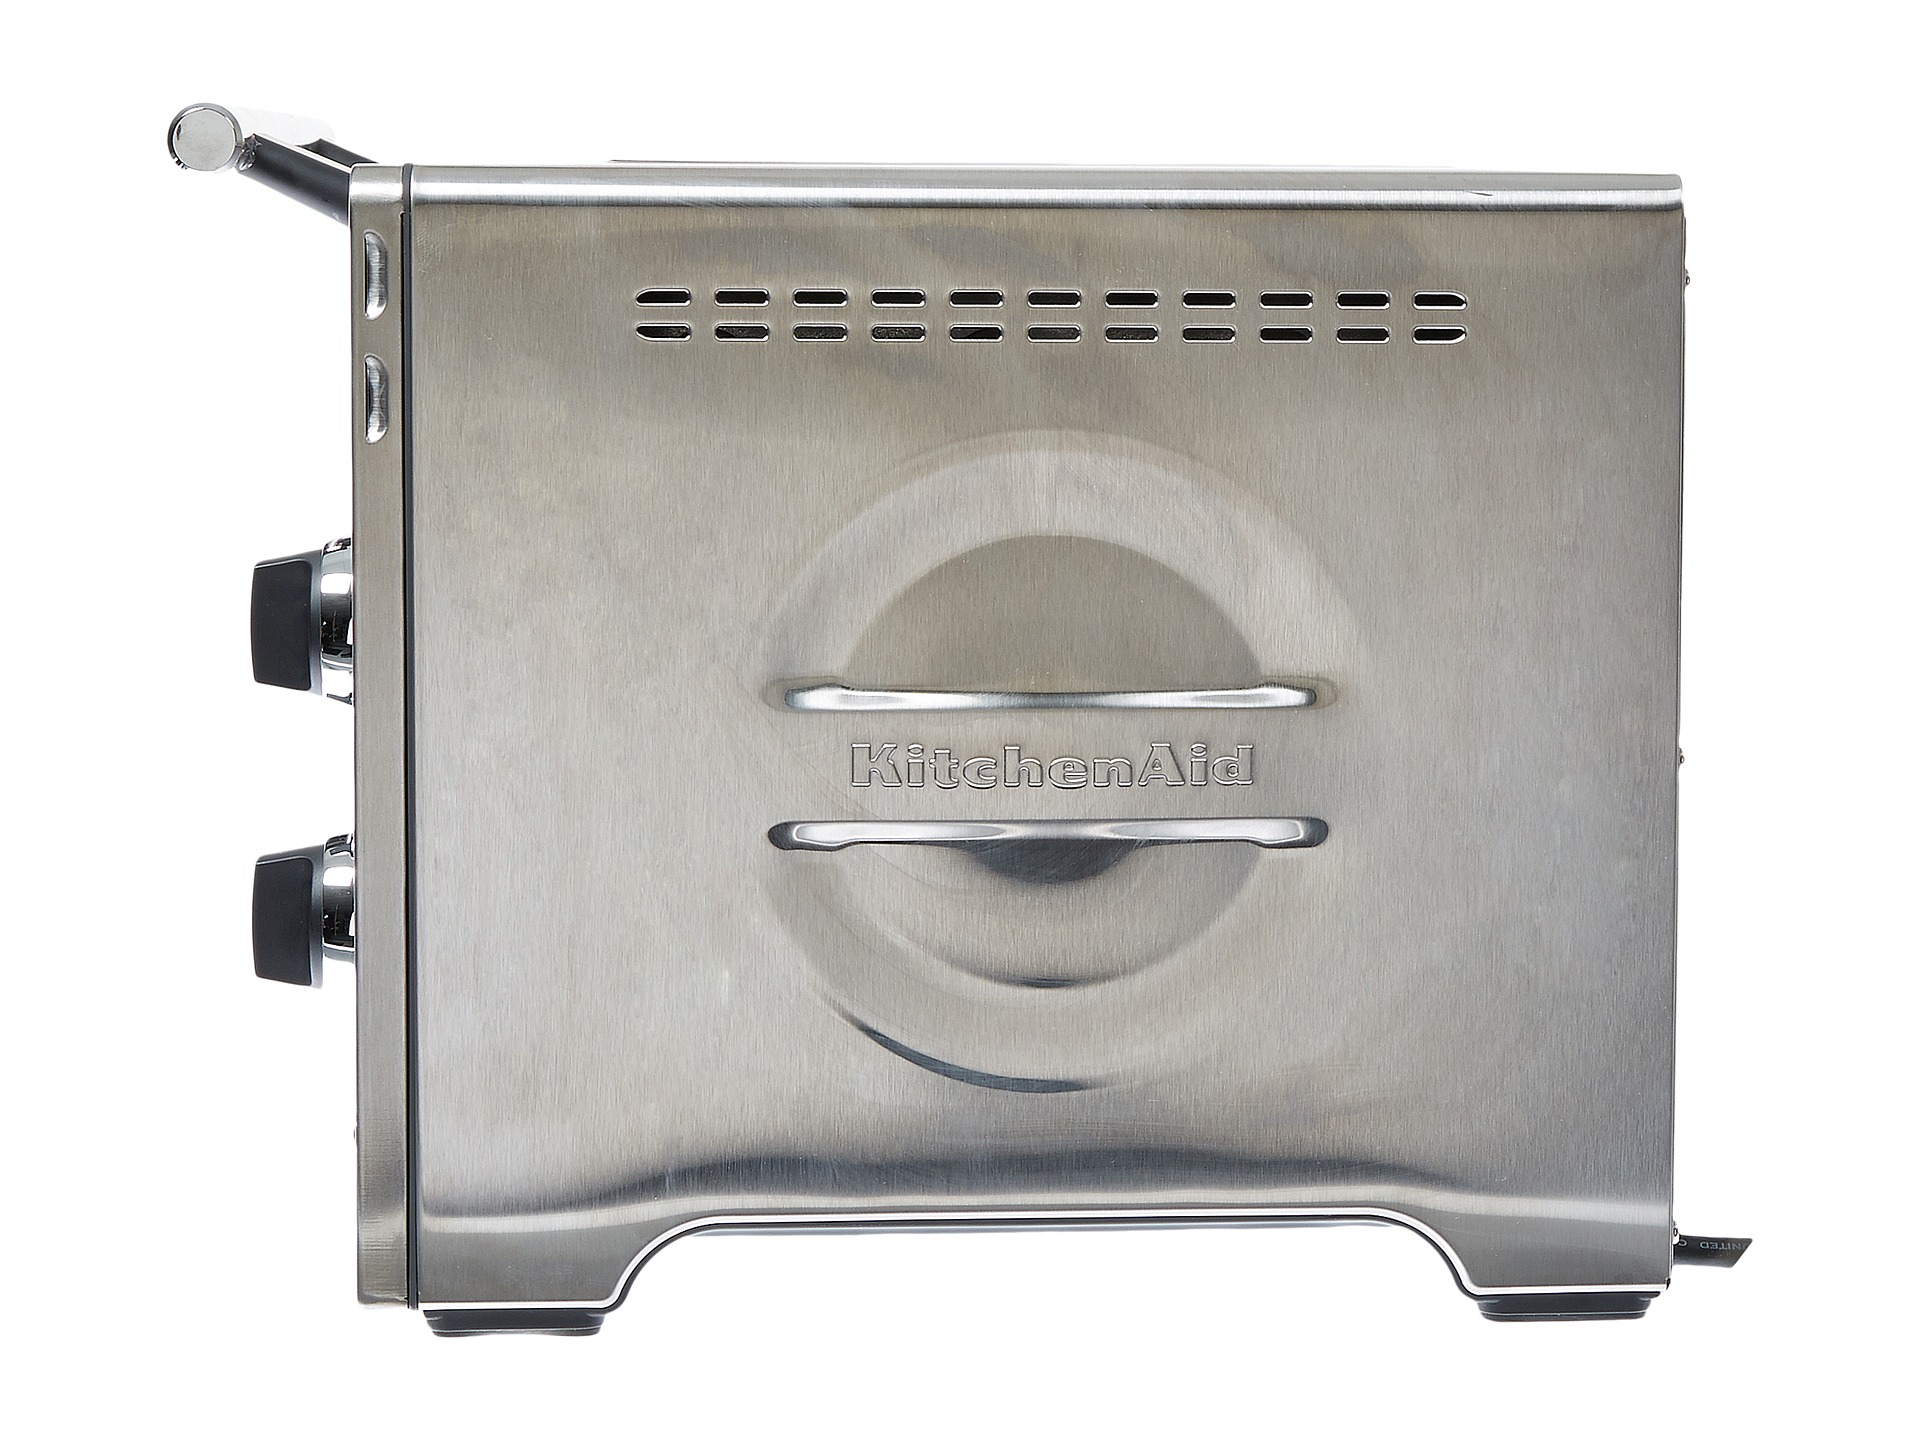 Countertop Convection Oven Kitchenaid : No results for kitchenaid kco273ss 12 convection countertop oven ...